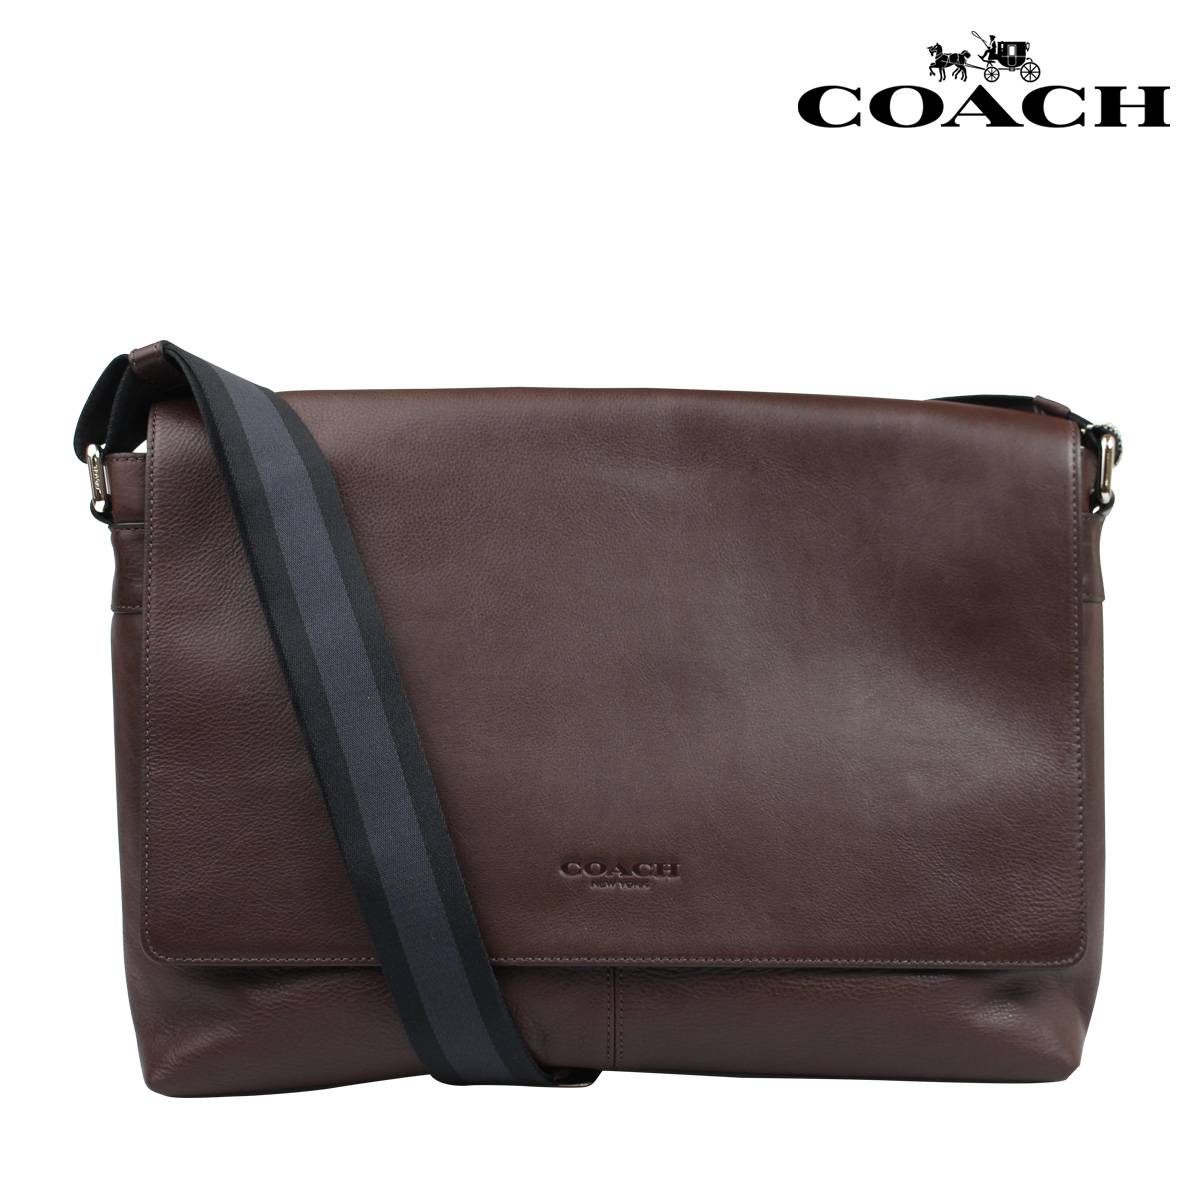 6658dcc292c1 Sugar Online Shop  Coach COACH men s Messenger bag shoulder bag ...